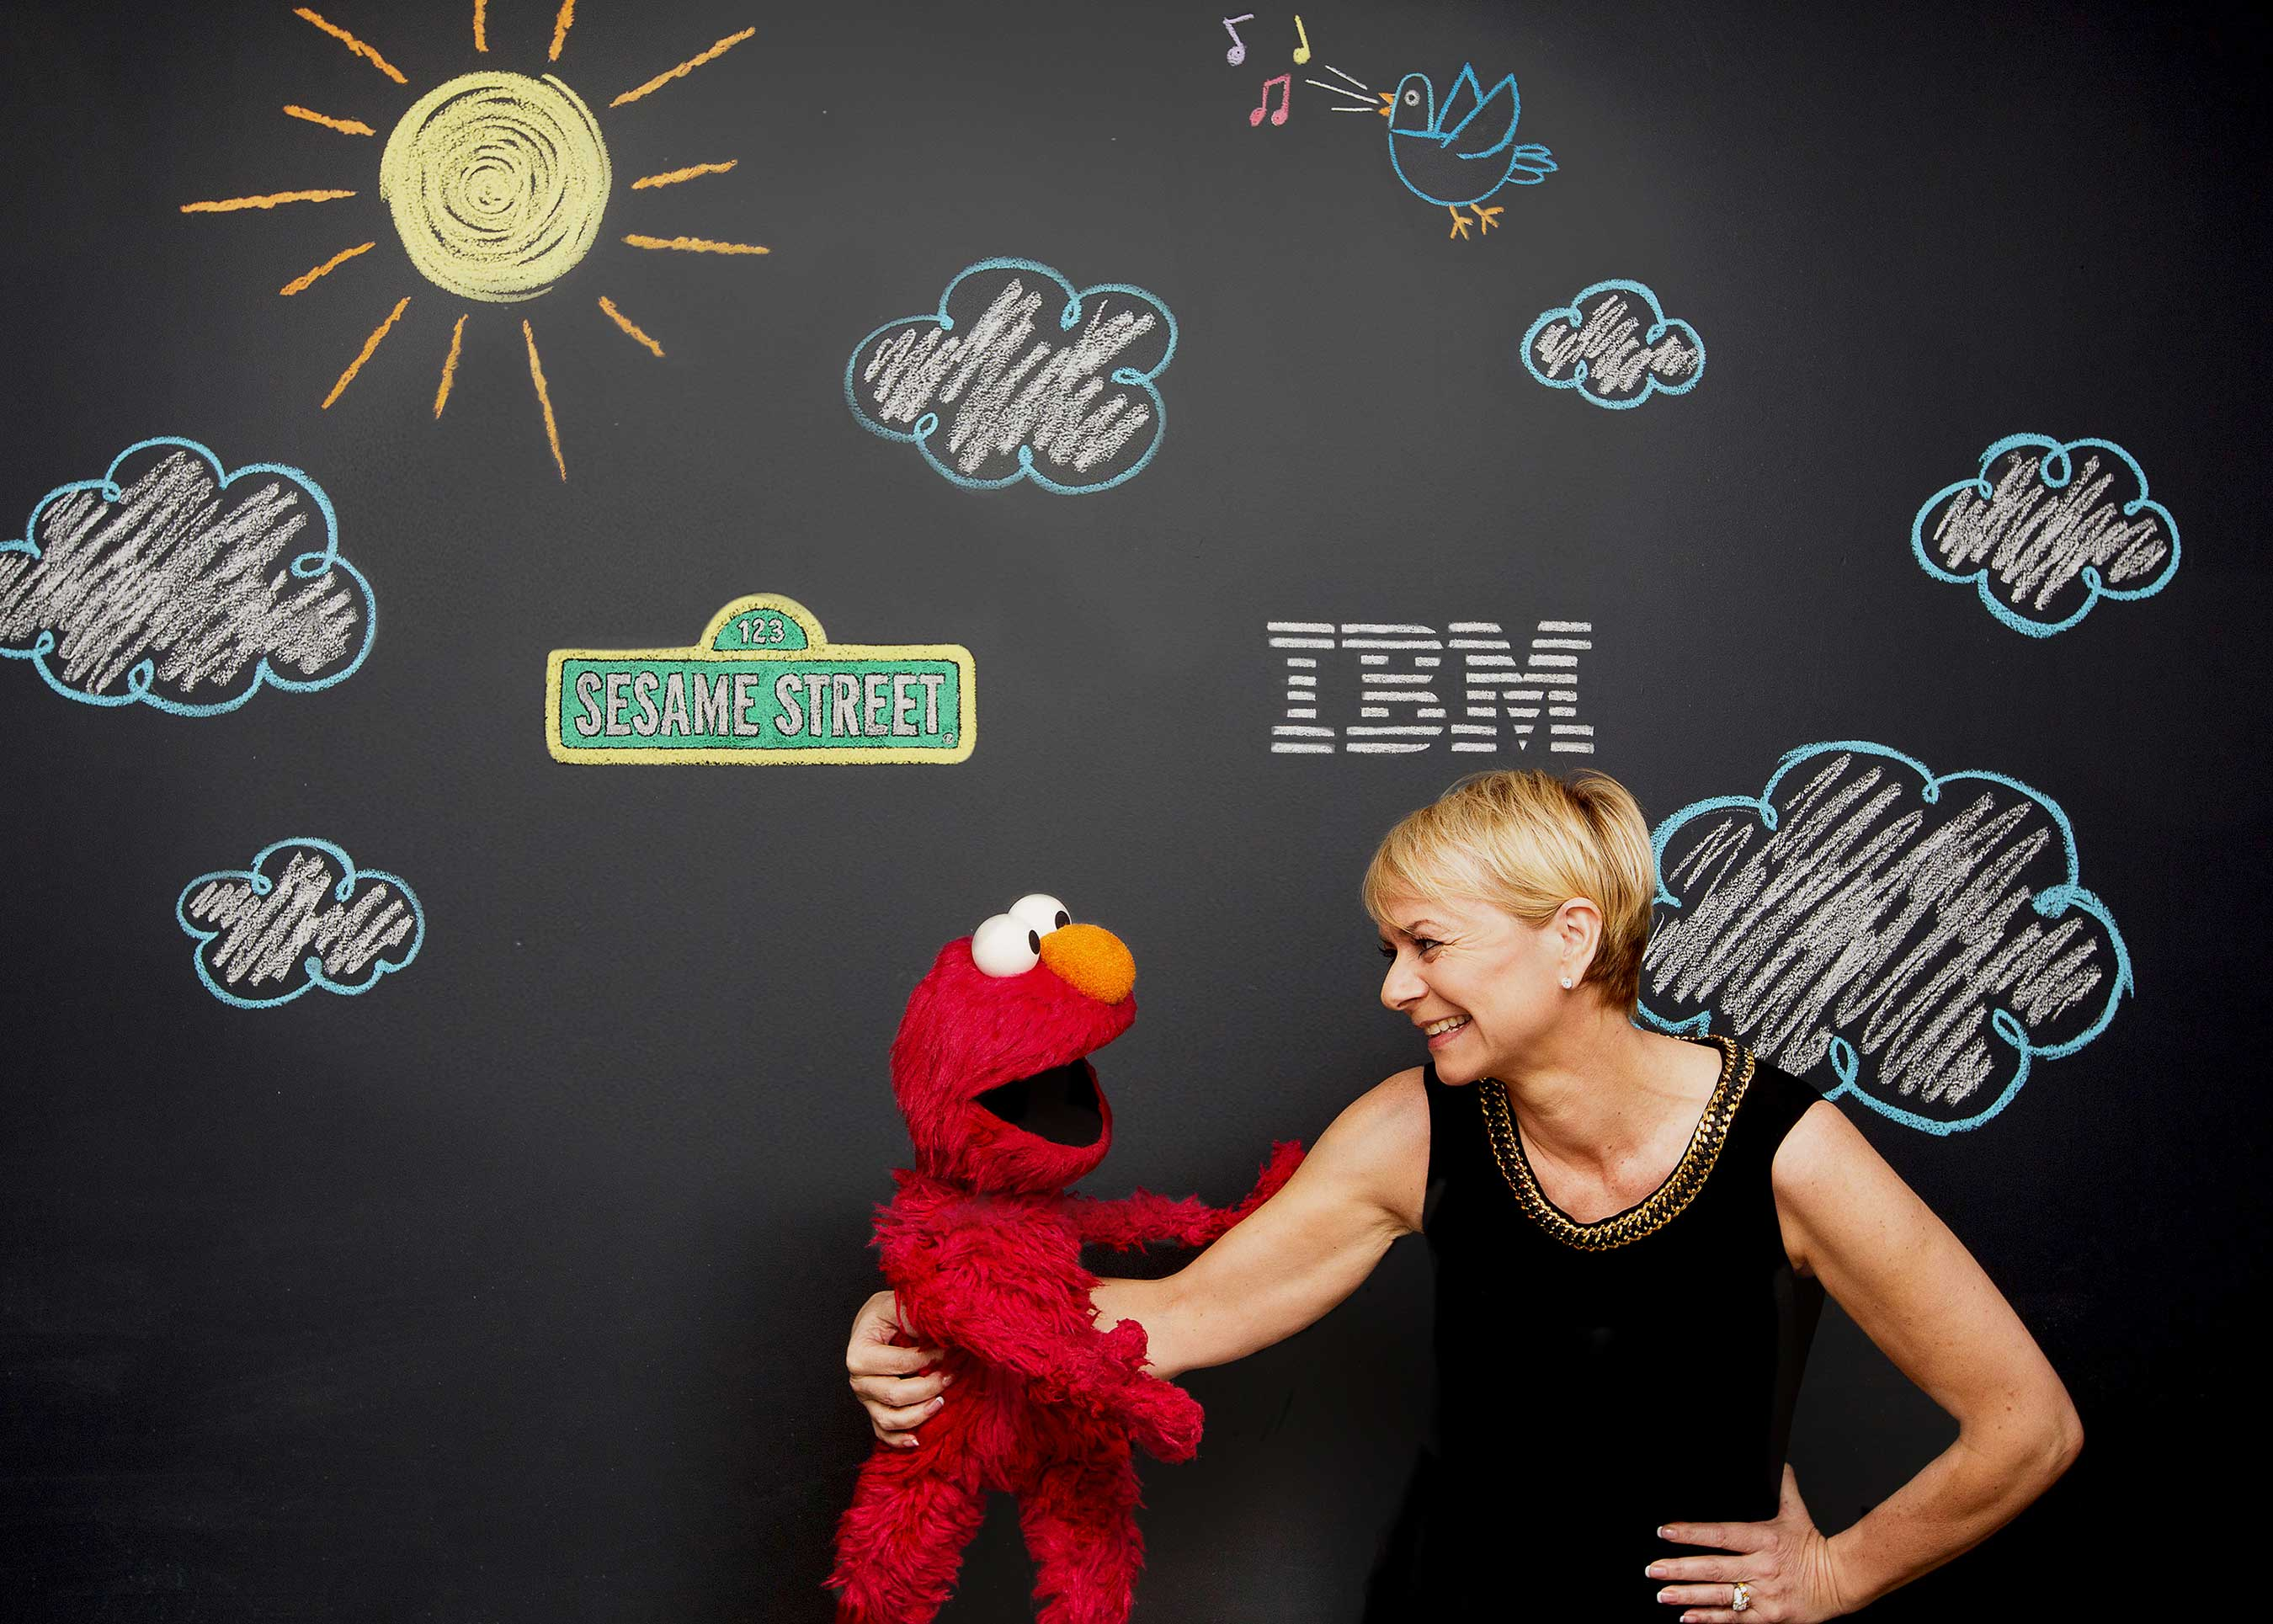 As part of a three-year agreement, Sesame Workshop and IBM Watson are developing a new category of educational products that aim to adapt to the learning styles and aptitudes of individual preschoolers. Pictured here are Harriet Green, IBM General Manager of Watson Internet of Things, Commerce and Education, and Elmo, 3 1/2 year old monster. (John O'Boyle, Feature Photo Service for IBM)